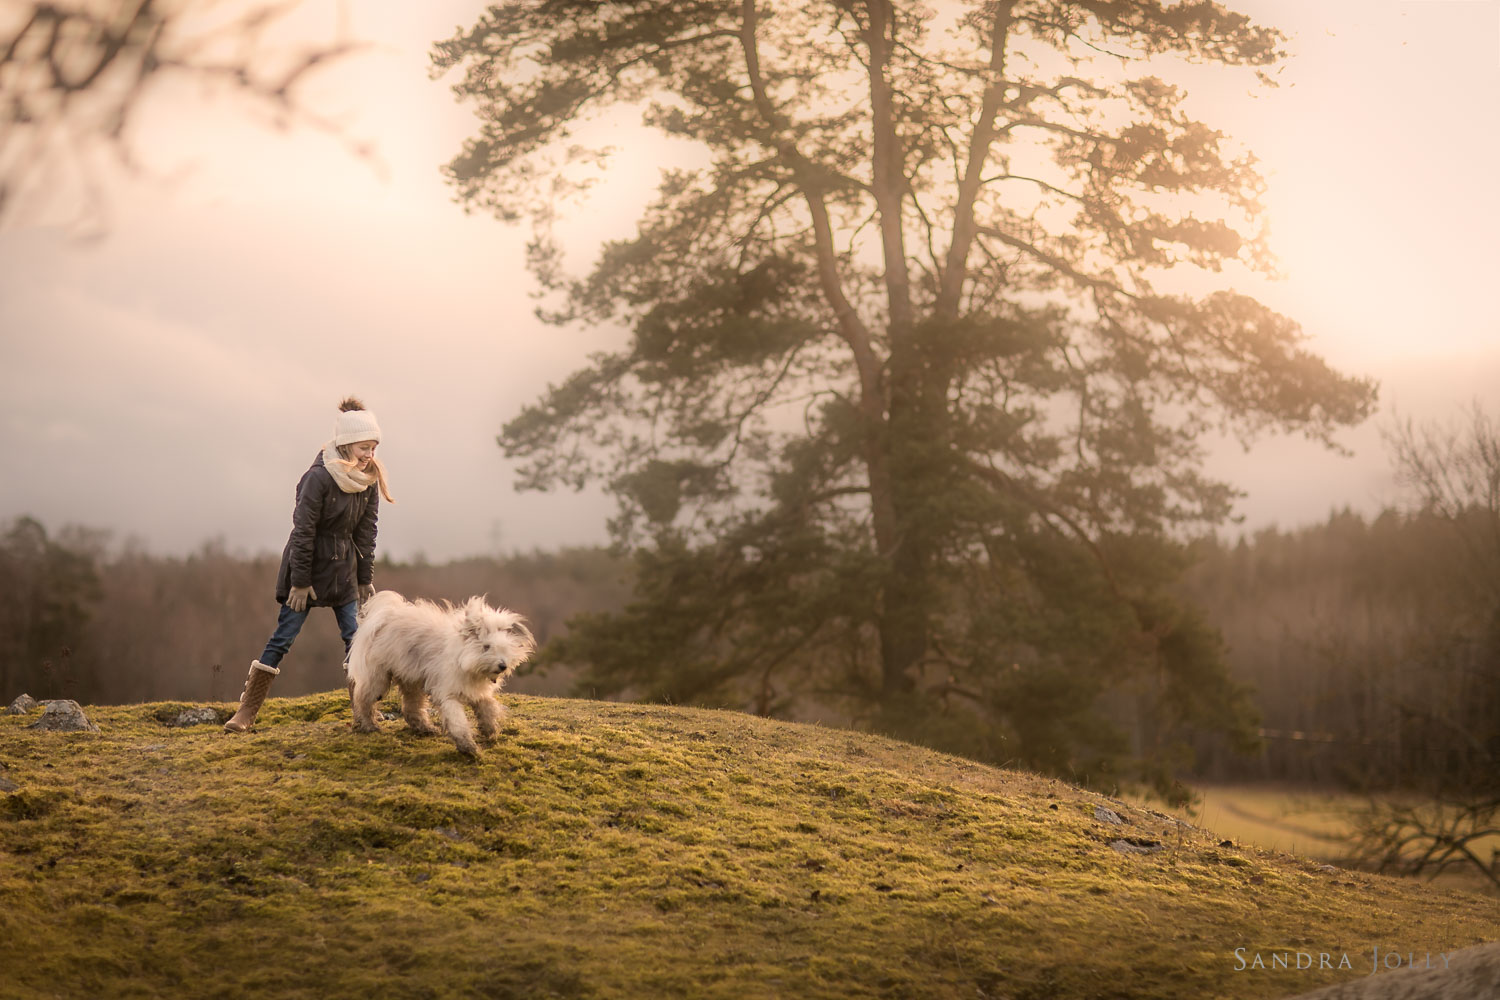 Photo-of-a-girl-and-her-dog-on-a-hill-by-Sandra-Jolly.jpg